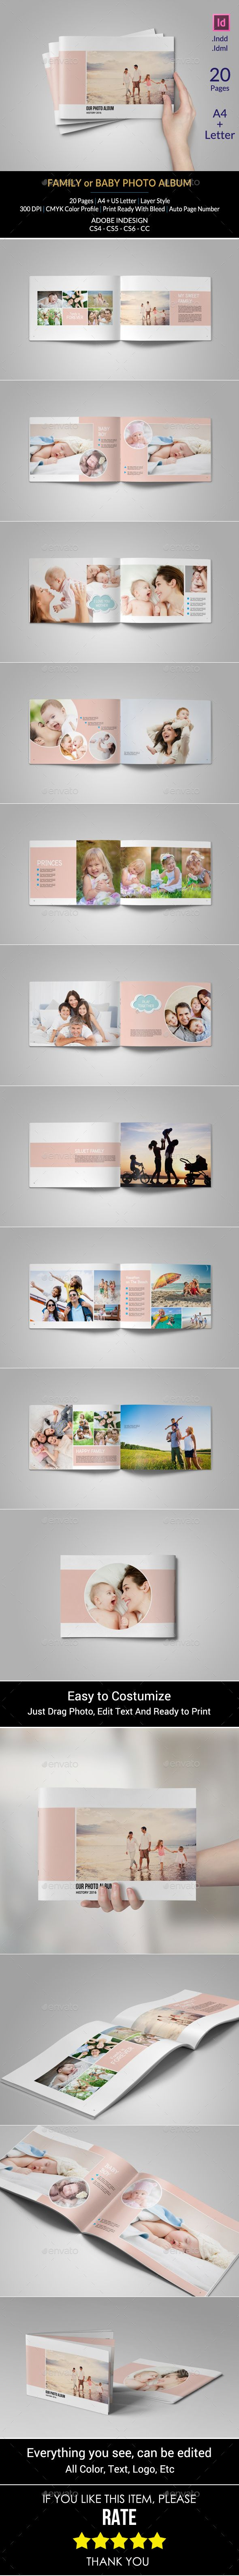 Family Or Baby Photo Album Template InDesign INDD. Download here: http://graphicriver.net/item/family-or-baby-photo-album/15648674?ref=ksioks